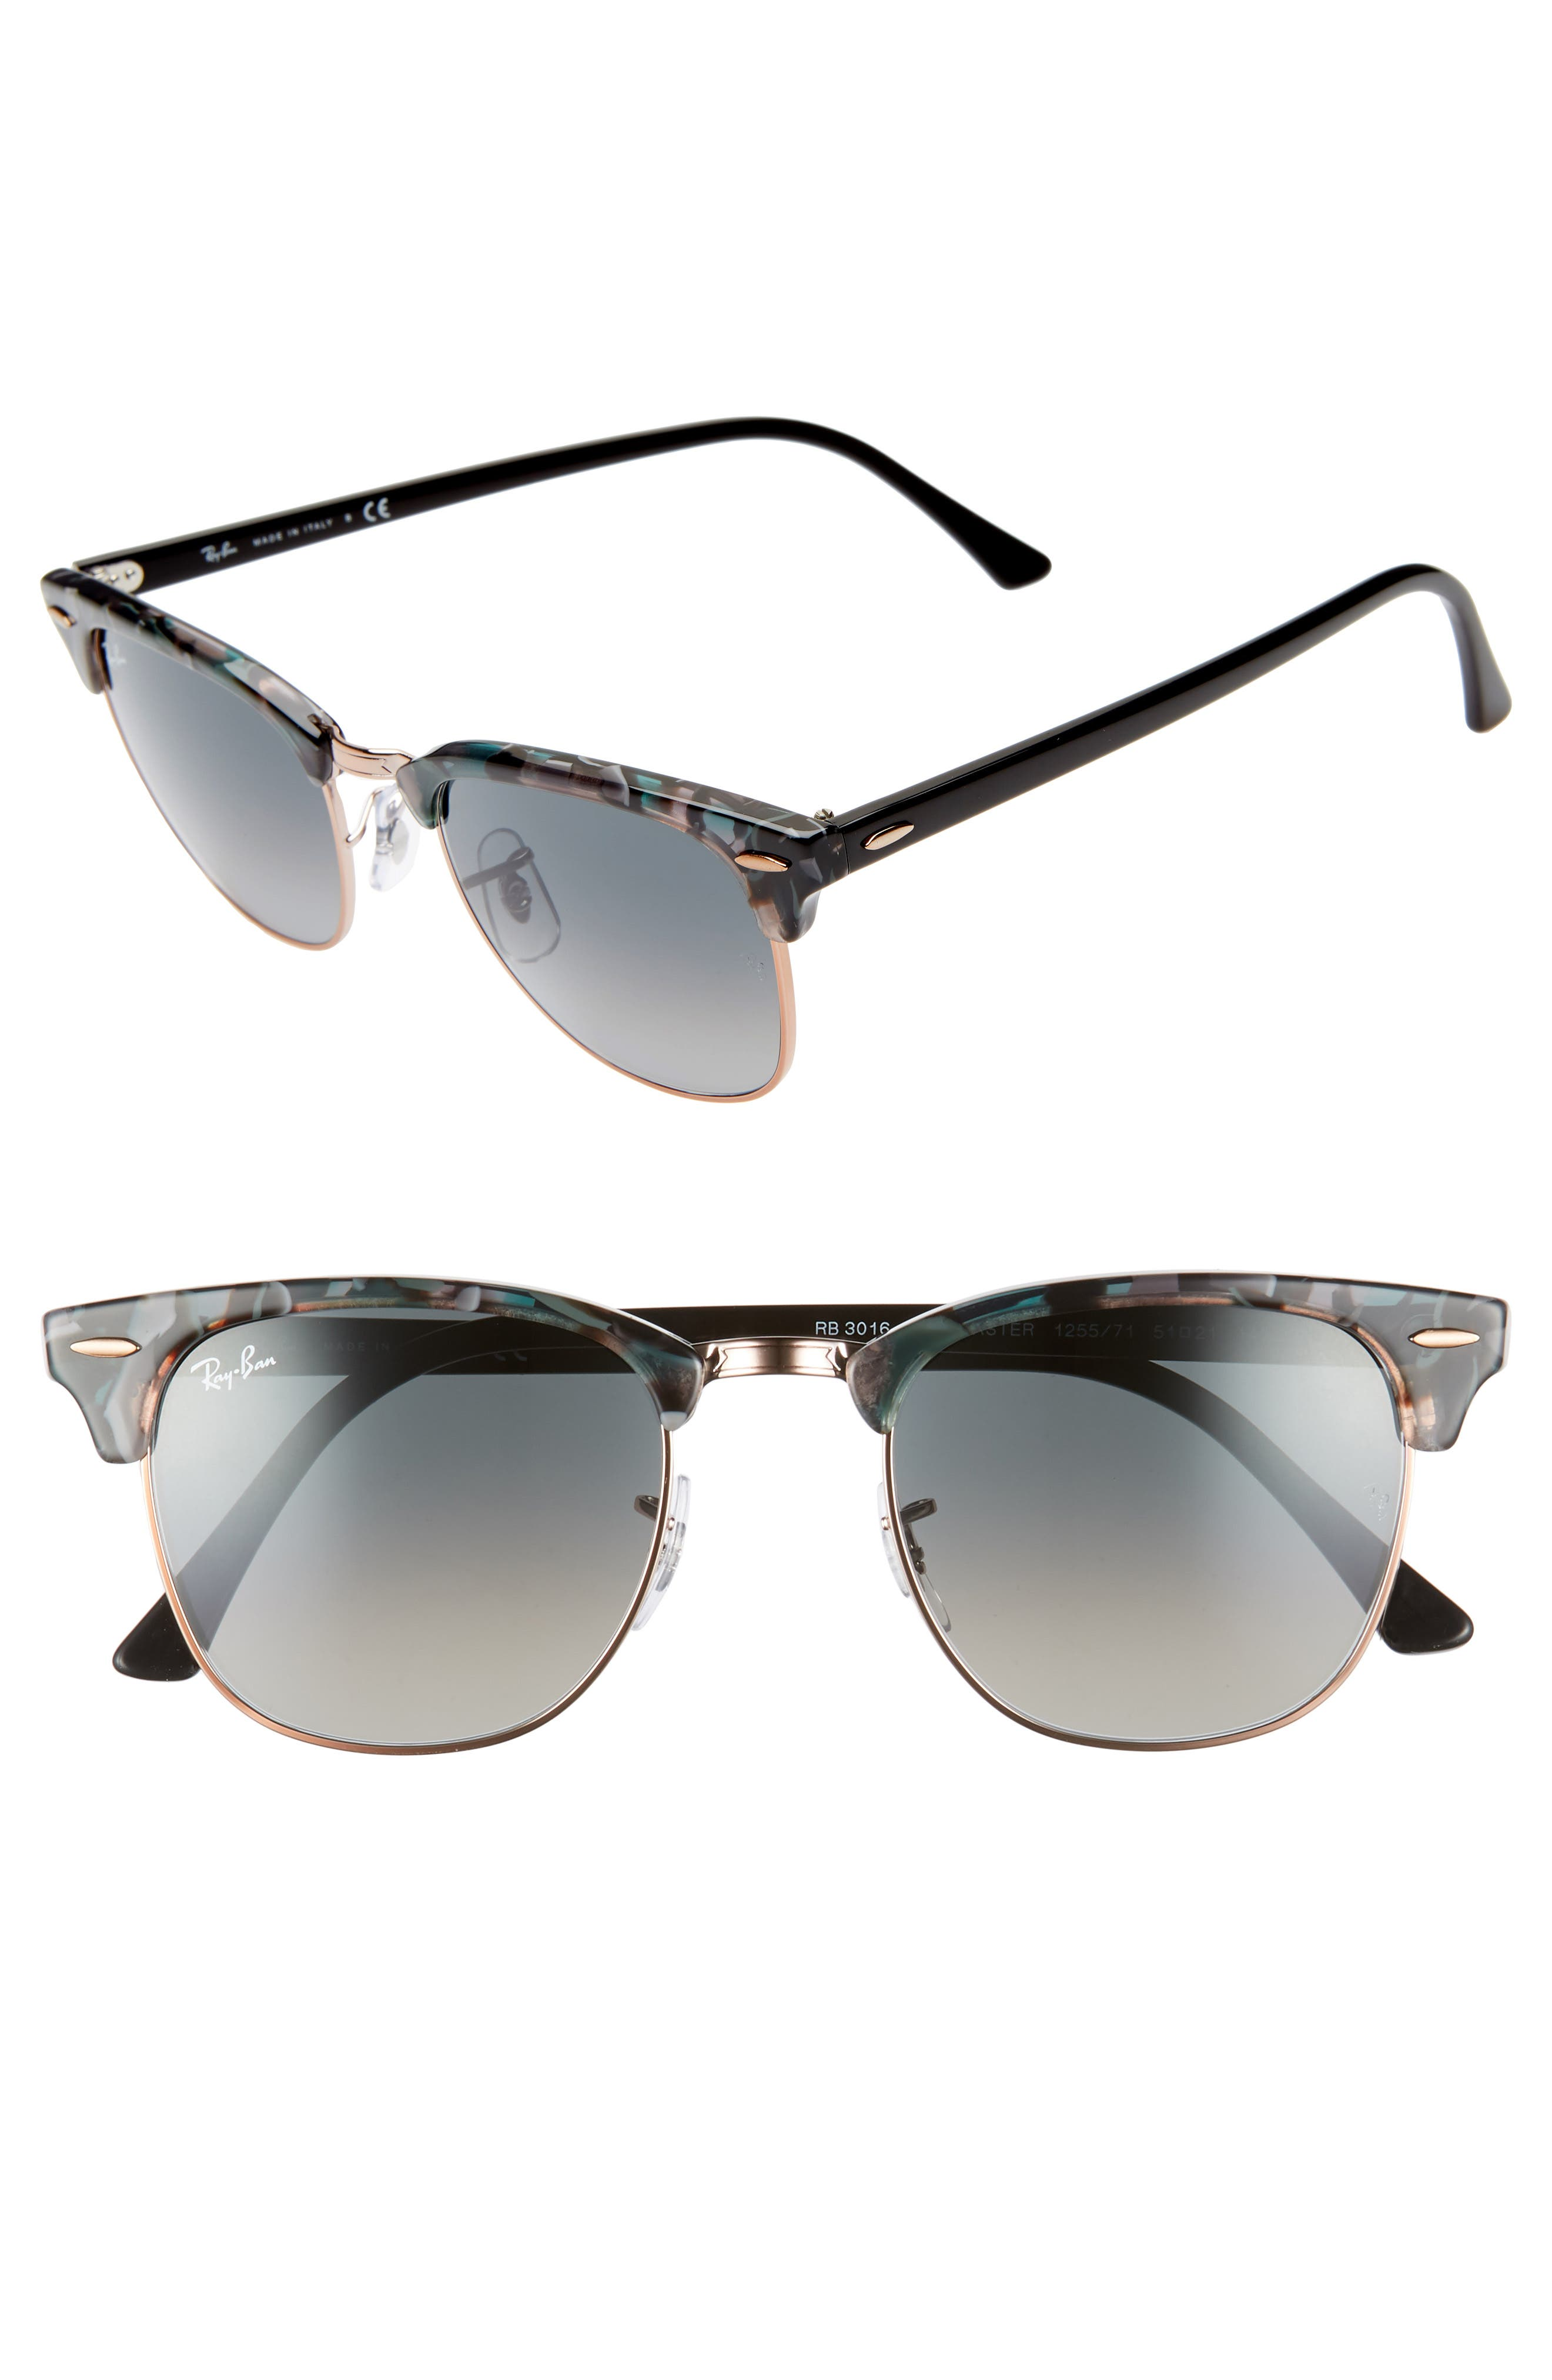 Ray-Ban Clubmaster 51Mm Gradient Sunglasses - Grey/ Green Gradient